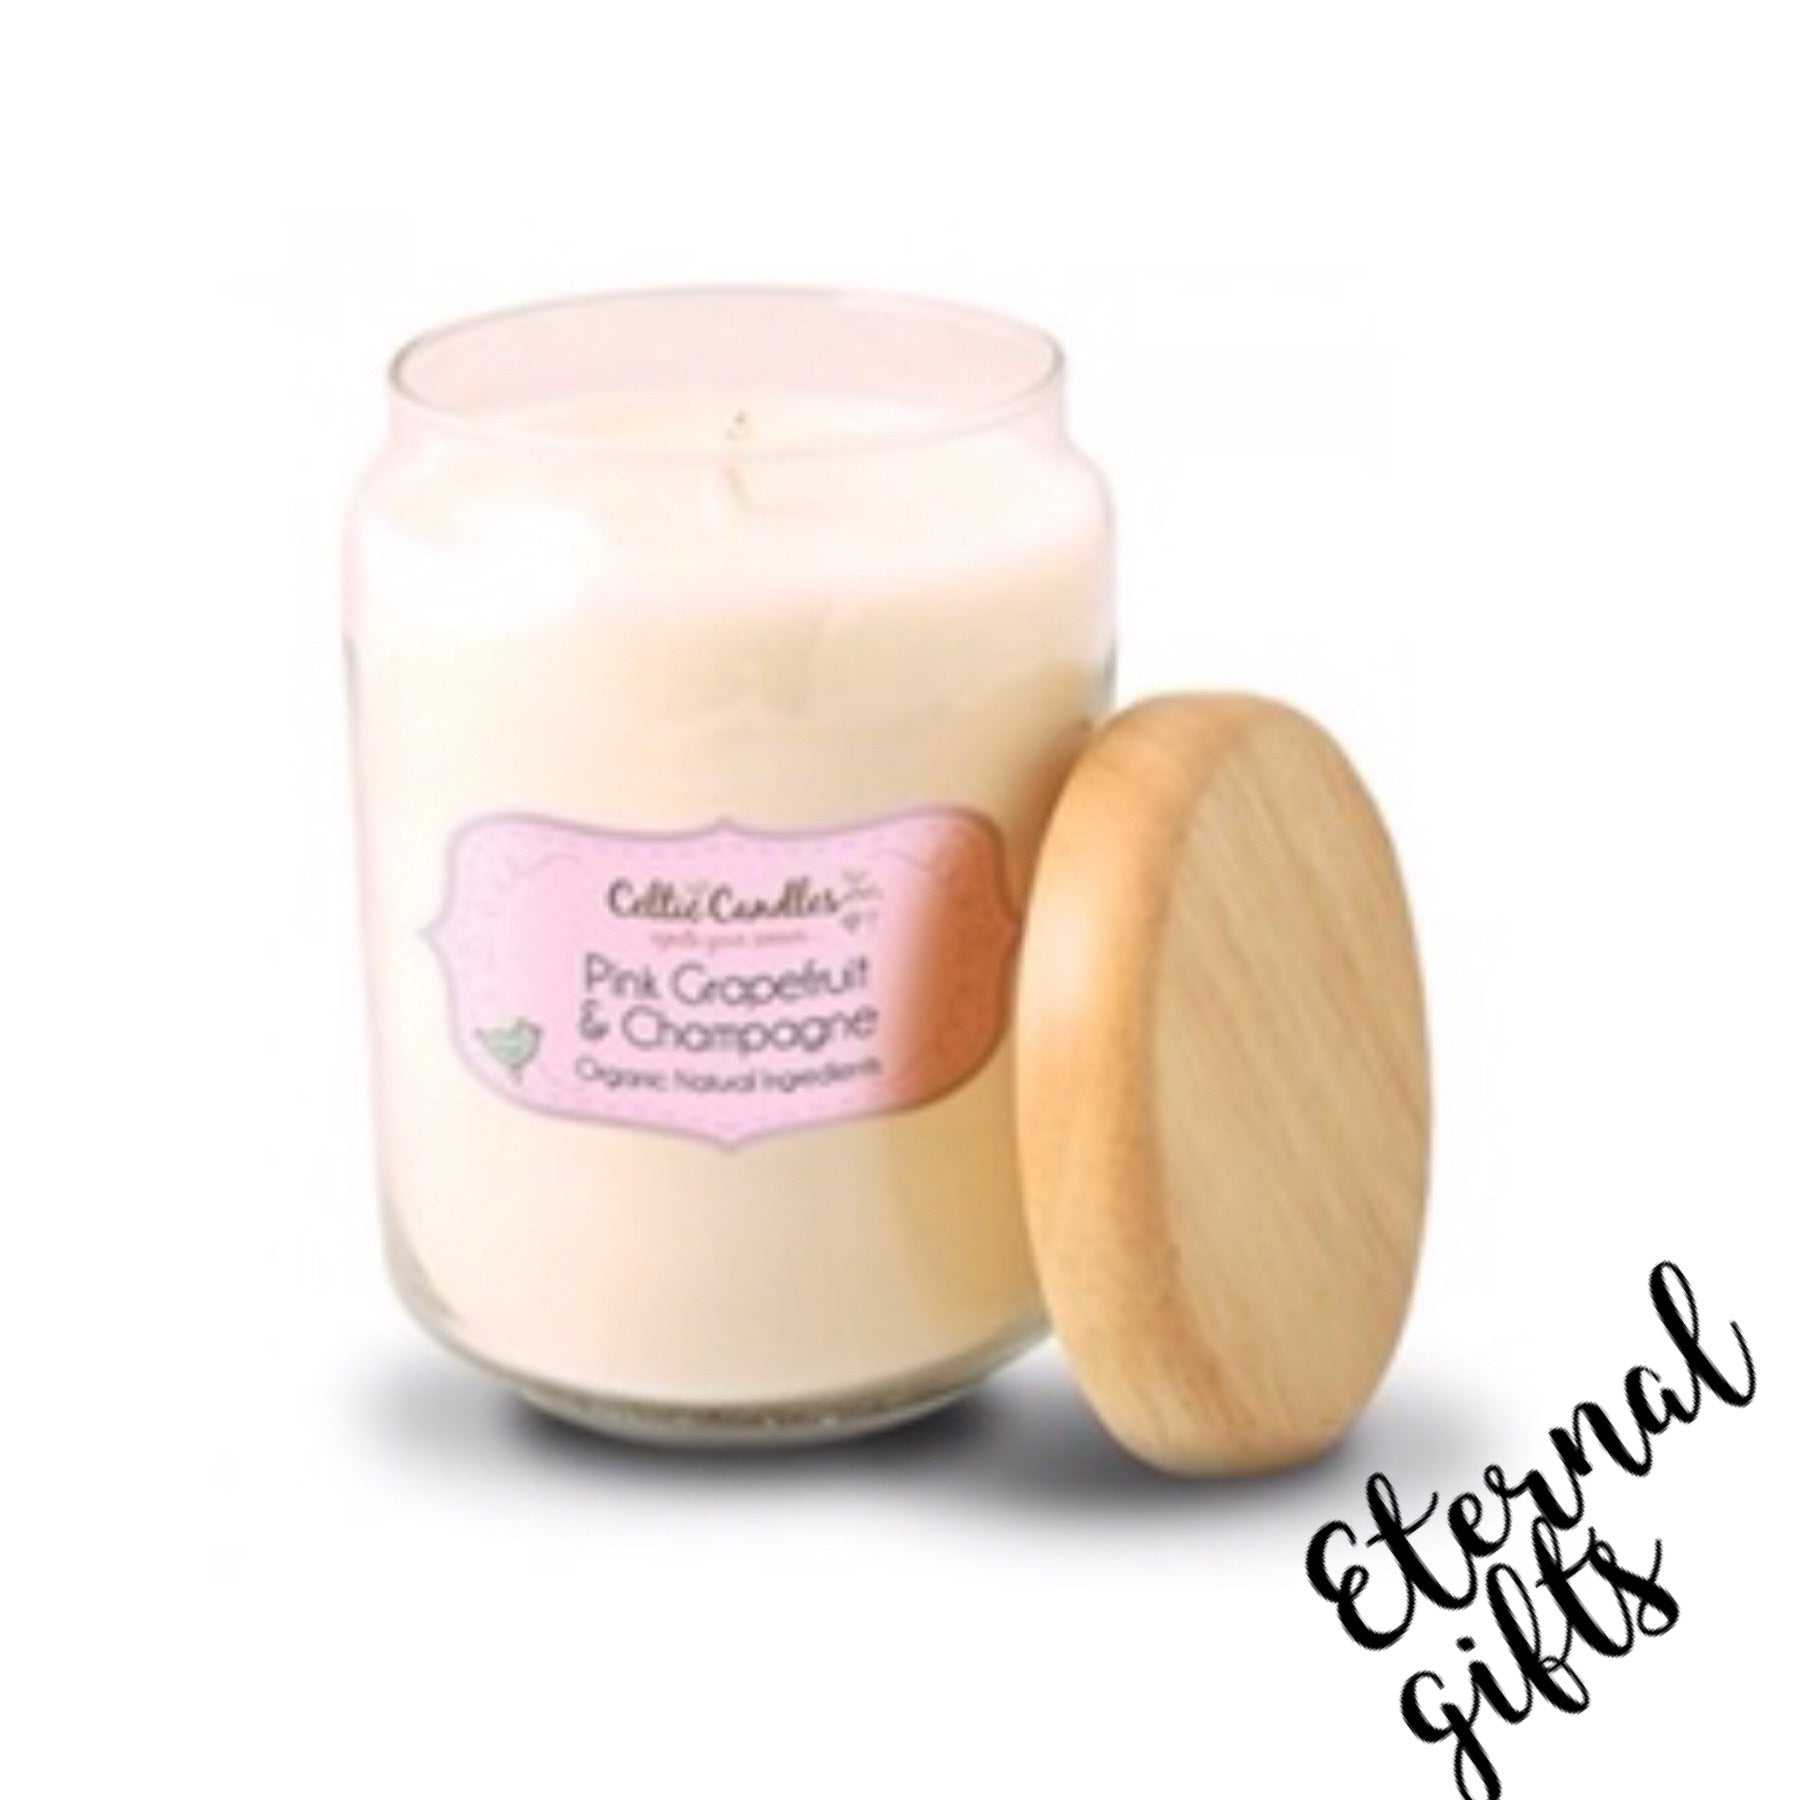 Pink Grapefruit & Champagne- Large Pop Jar- Celtic Candles